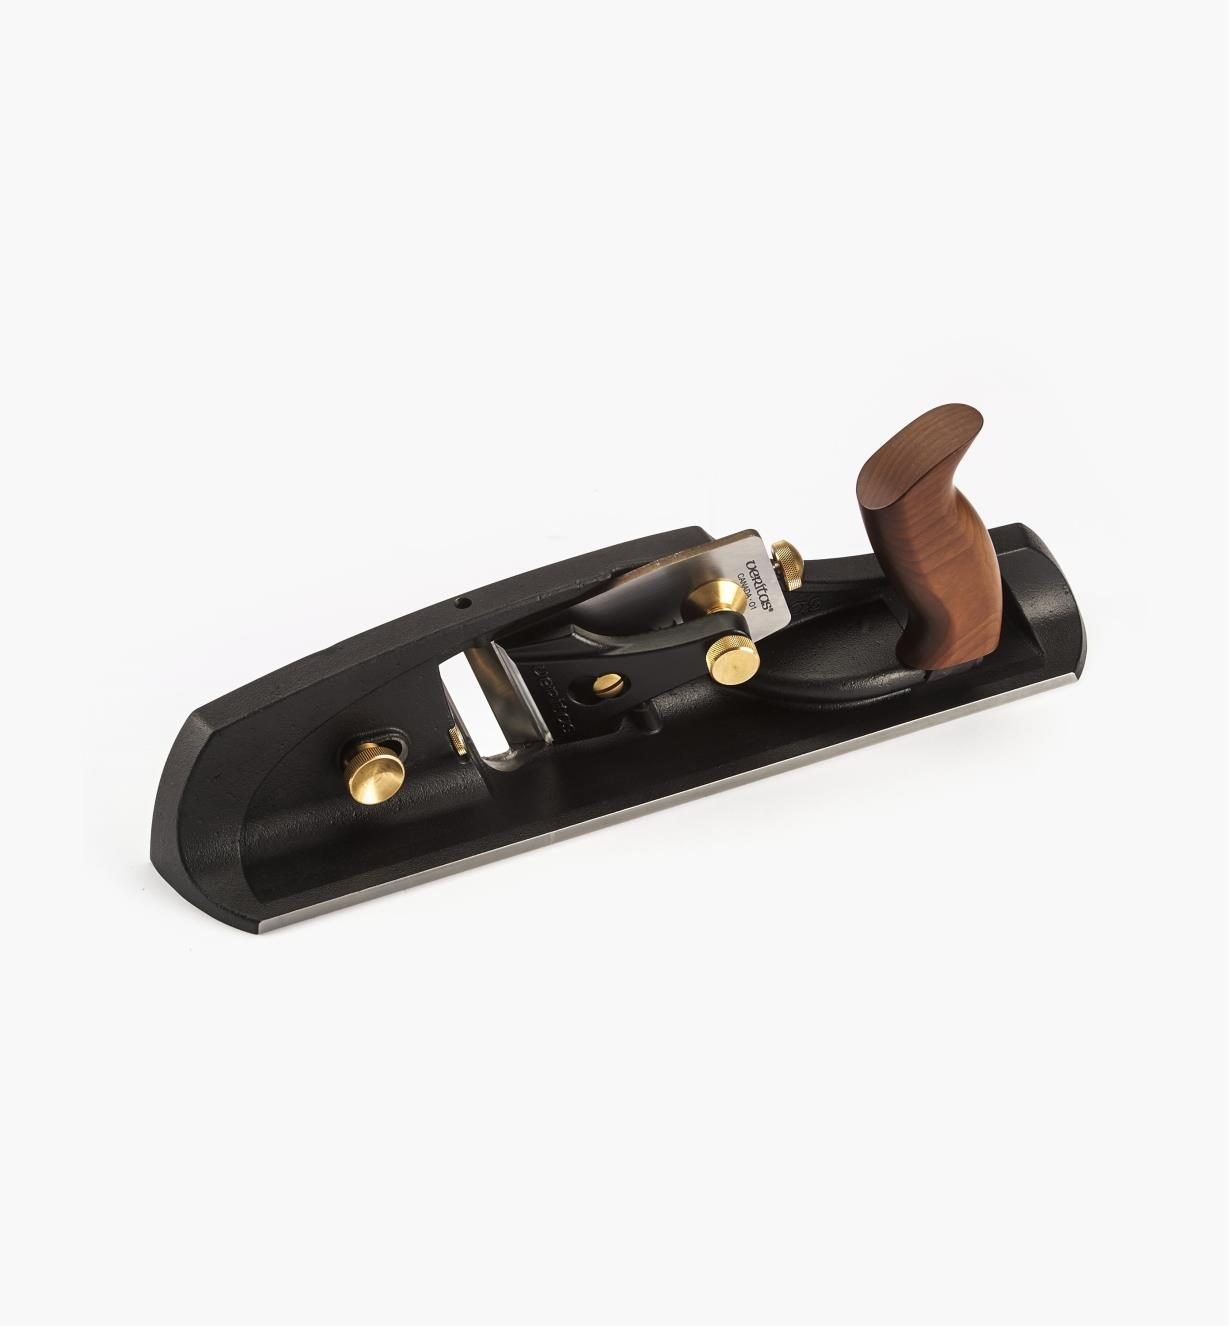 05P5551 - Veritas Left-Hand Shooting Plane, O1 Blade